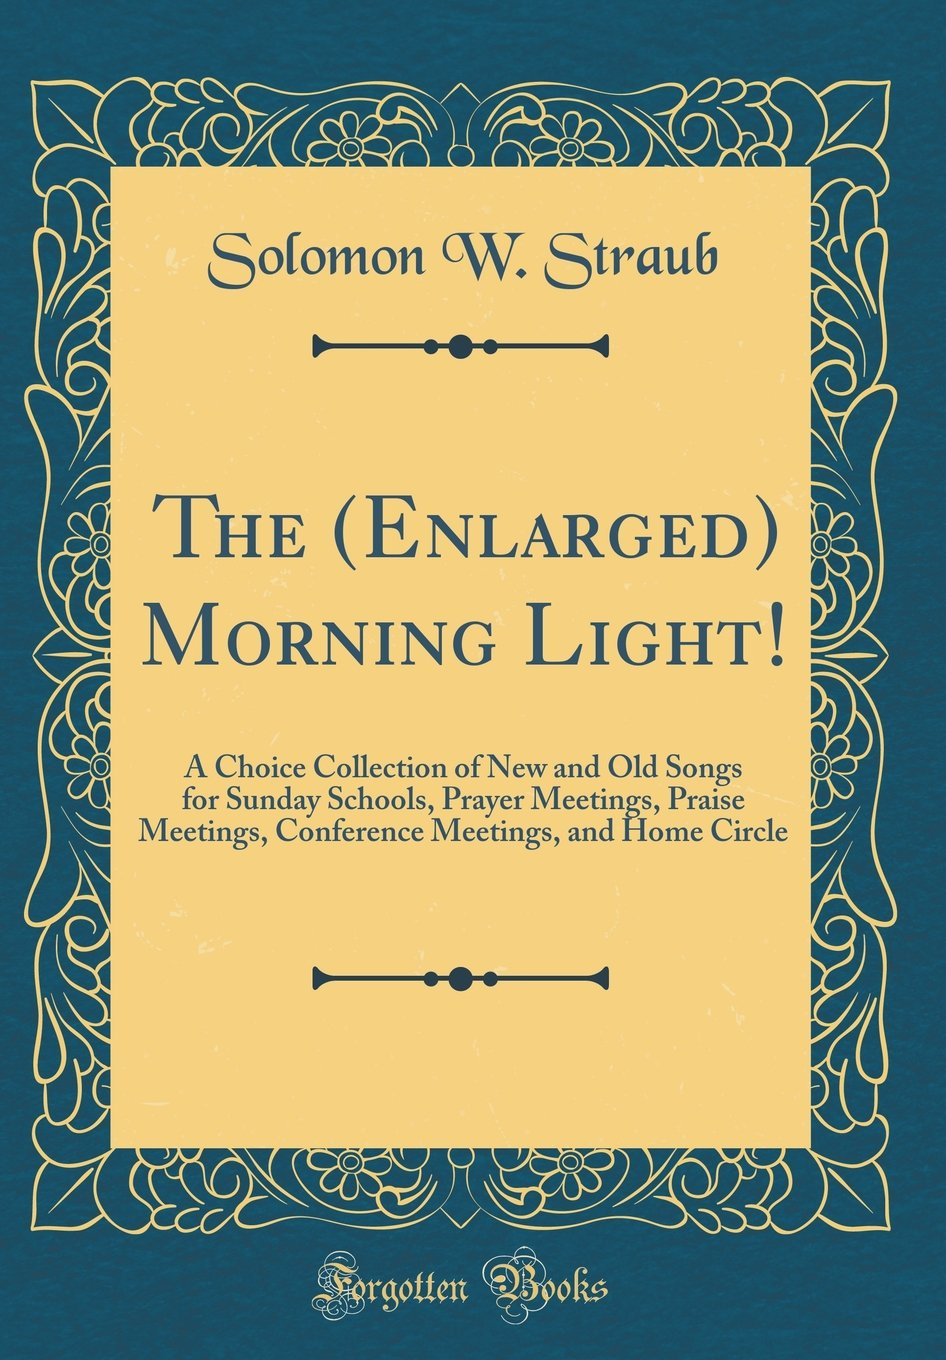 The (Enlarged) Morning Light!: A Choice Collection of New and Old Songs for Sunday Schools, Prayer Meetings, Praise Meetings, Conference Meetings, and Home Circle (Classic Reprint) pdf epub